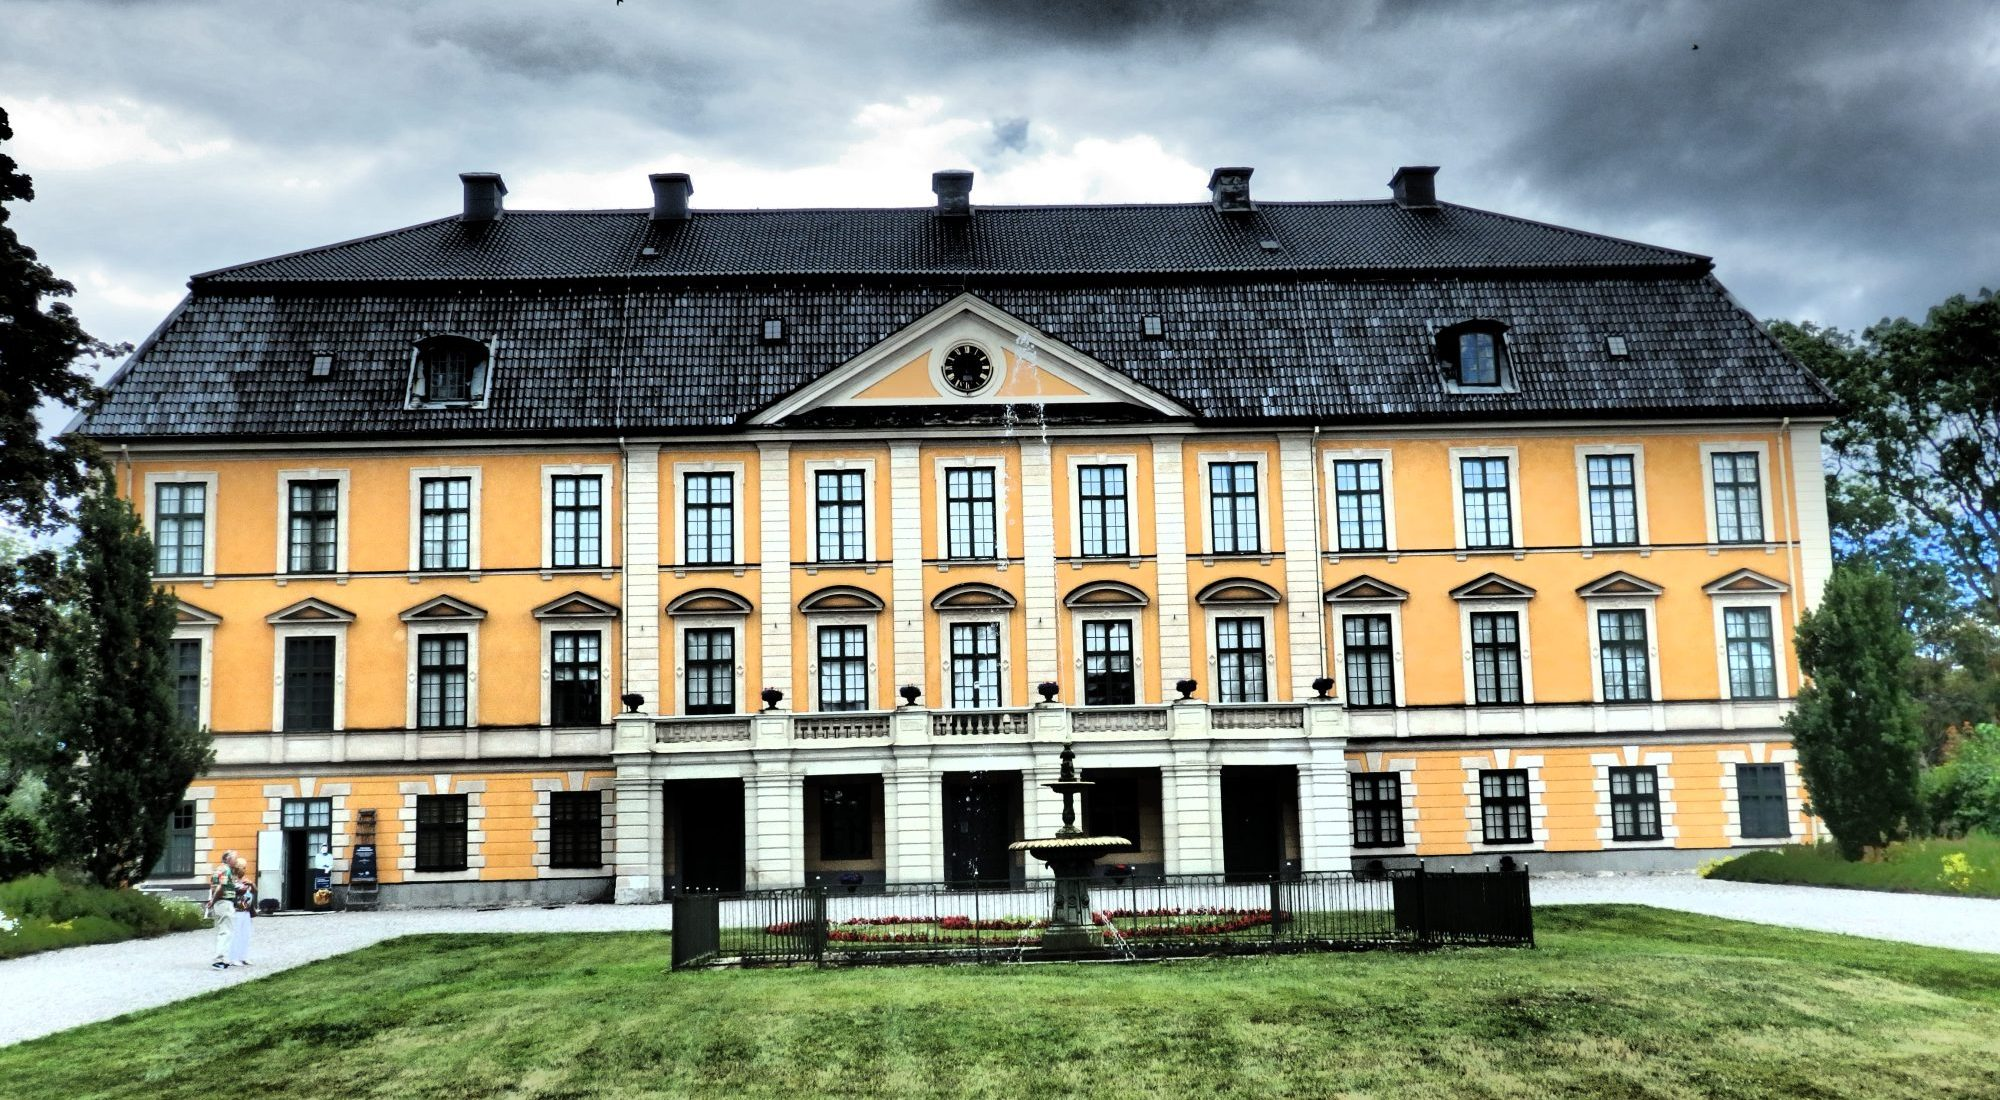 the manor house at Nynäs